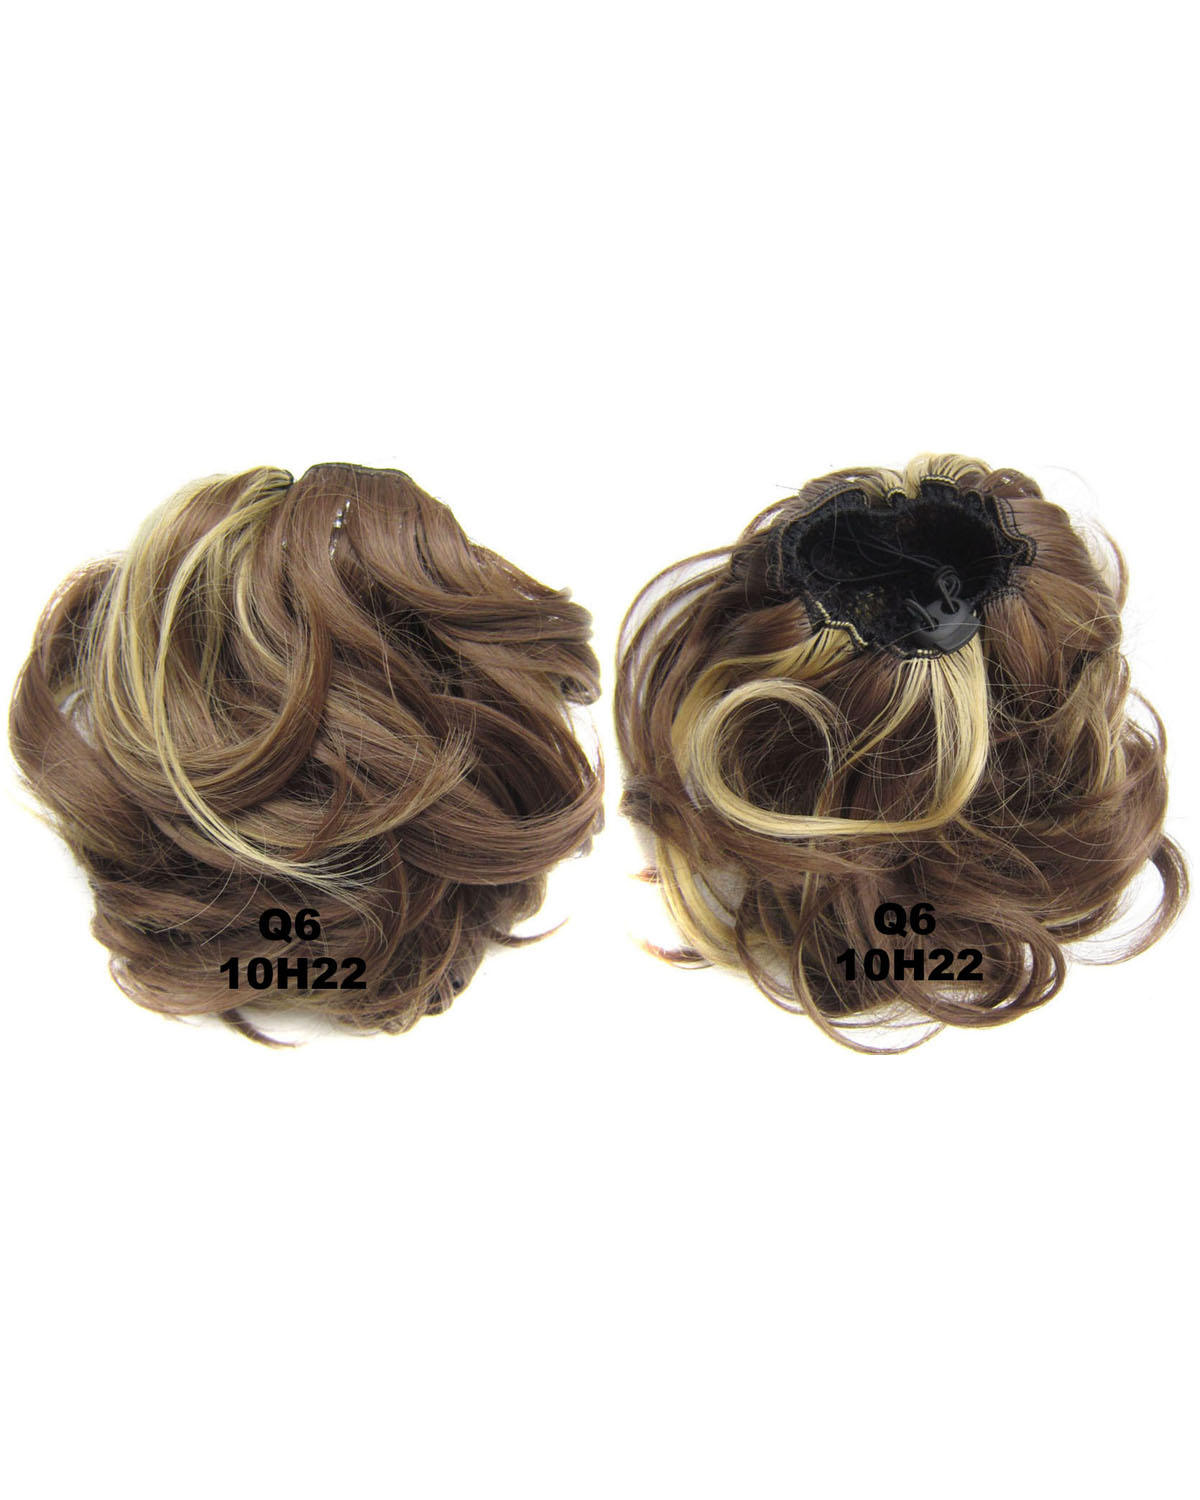 Ladies Hot-sale and Great Quality Curly and Short Hair Buns Drawstring Synthetic Hair Extension Bride Scrunchies  10H22